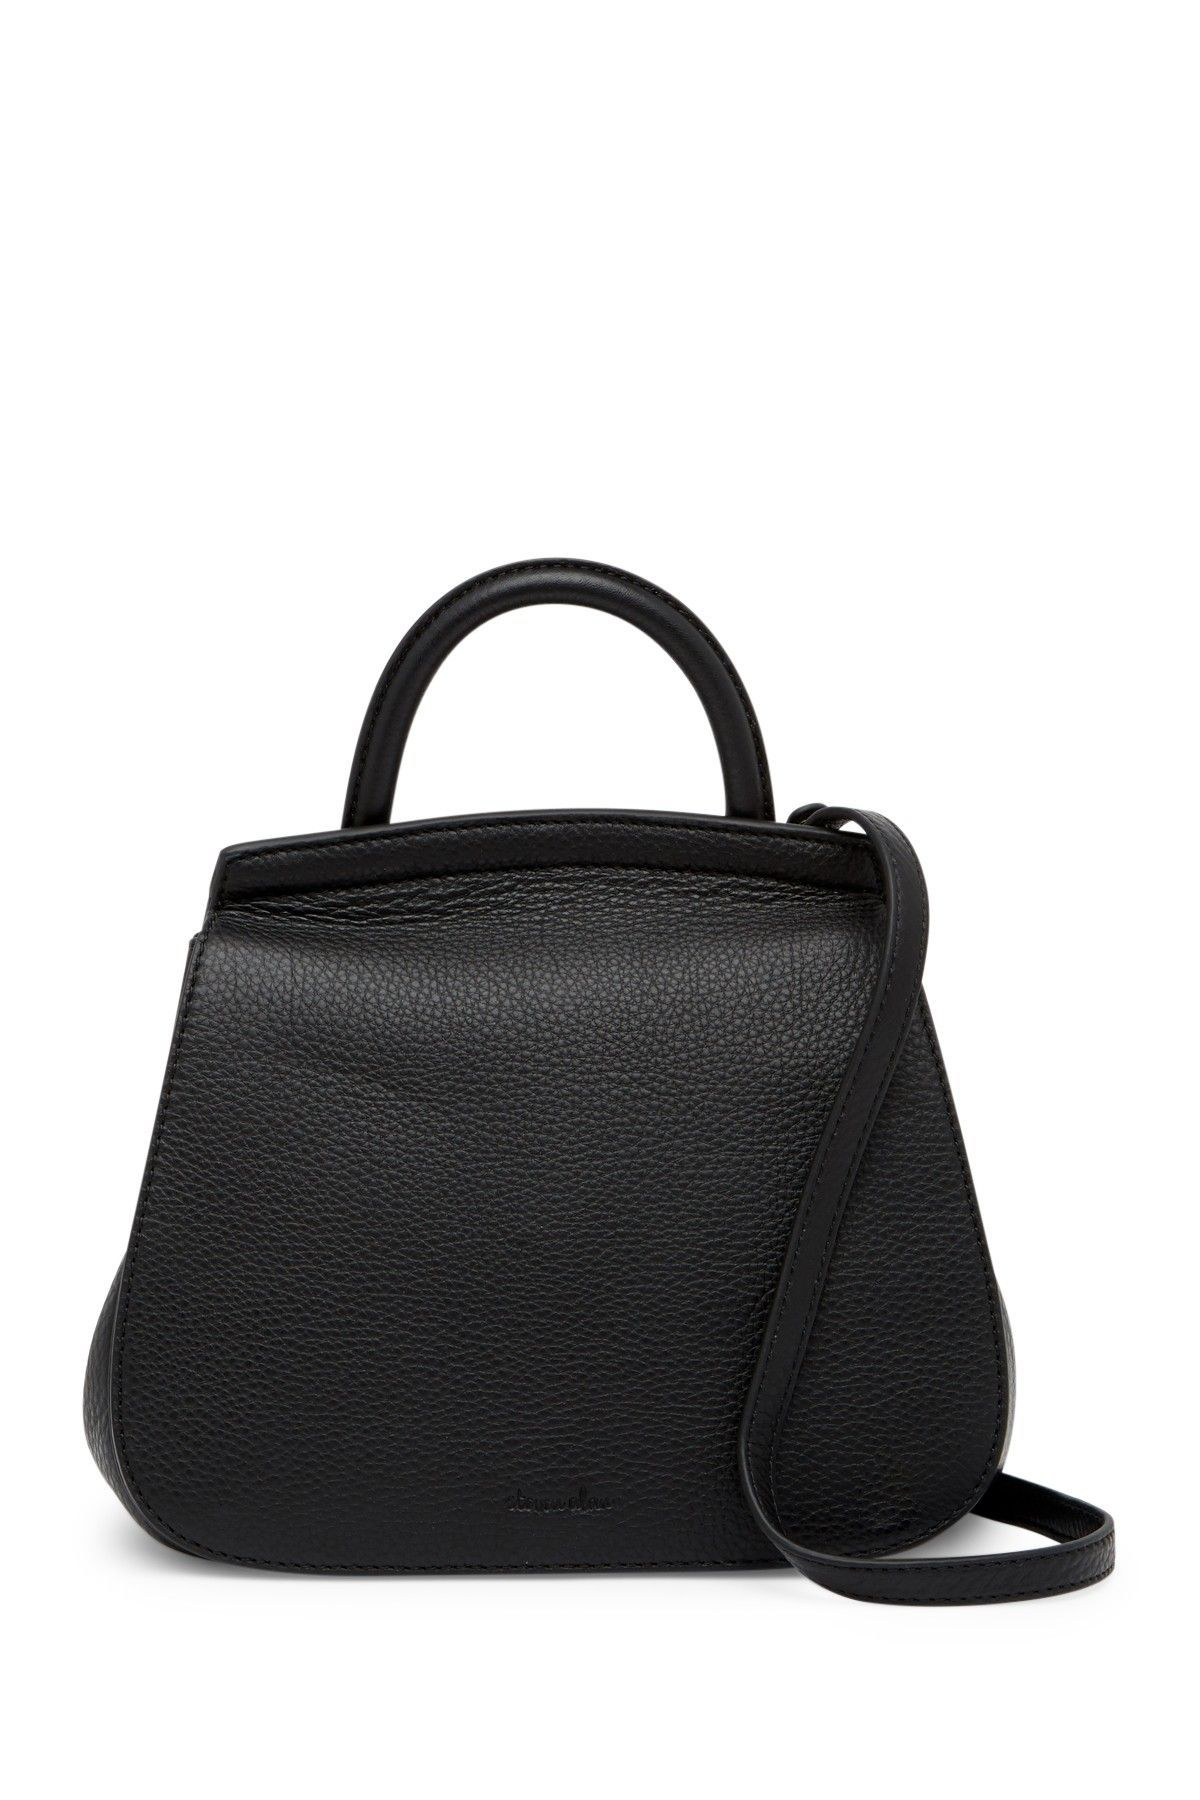 ee1c82e6fc9f Image of Steven Alan Kate Mini Convertible Leather Backpack   HandbagsMulberry